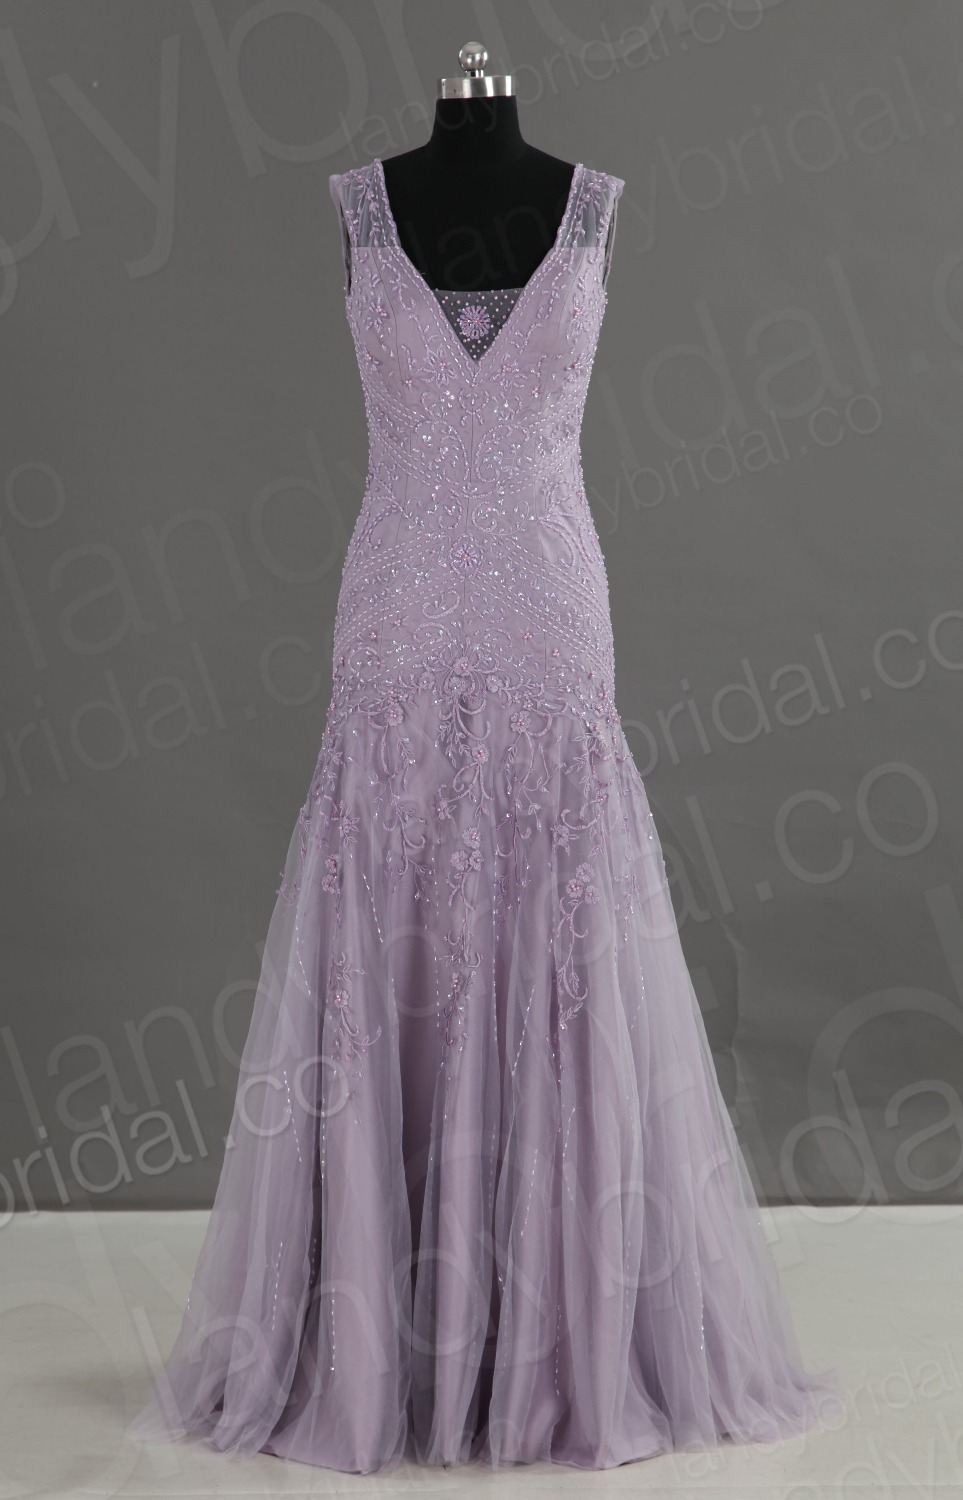 Small Of Lavender Wedding Dress